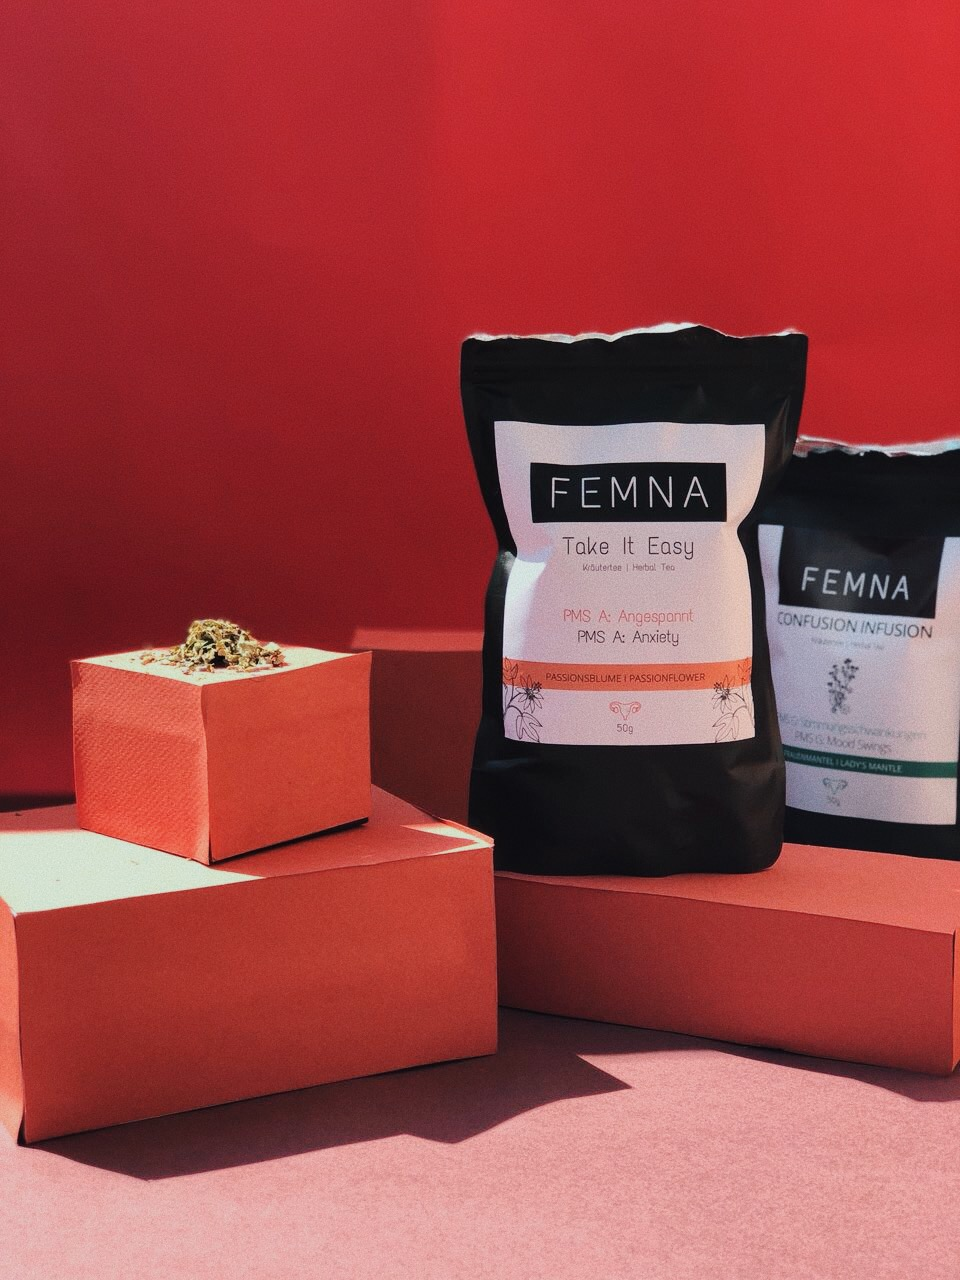 PMS is so real girls! Since we are not friends of taking pills we LOVE femna. Their   teas   are amazing and costumized so whatever your biggest issue is during PMS (anxiety, mood swings, etc) they will have the right one for you. - J